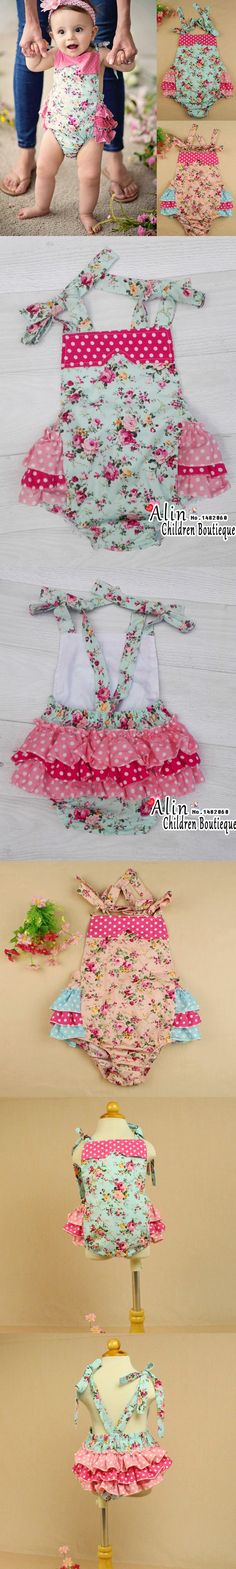 New Shabby Baby Rompers,Cotton Cake Smash Outfit,Ruffle Newborn Bubble Romper,#P0155